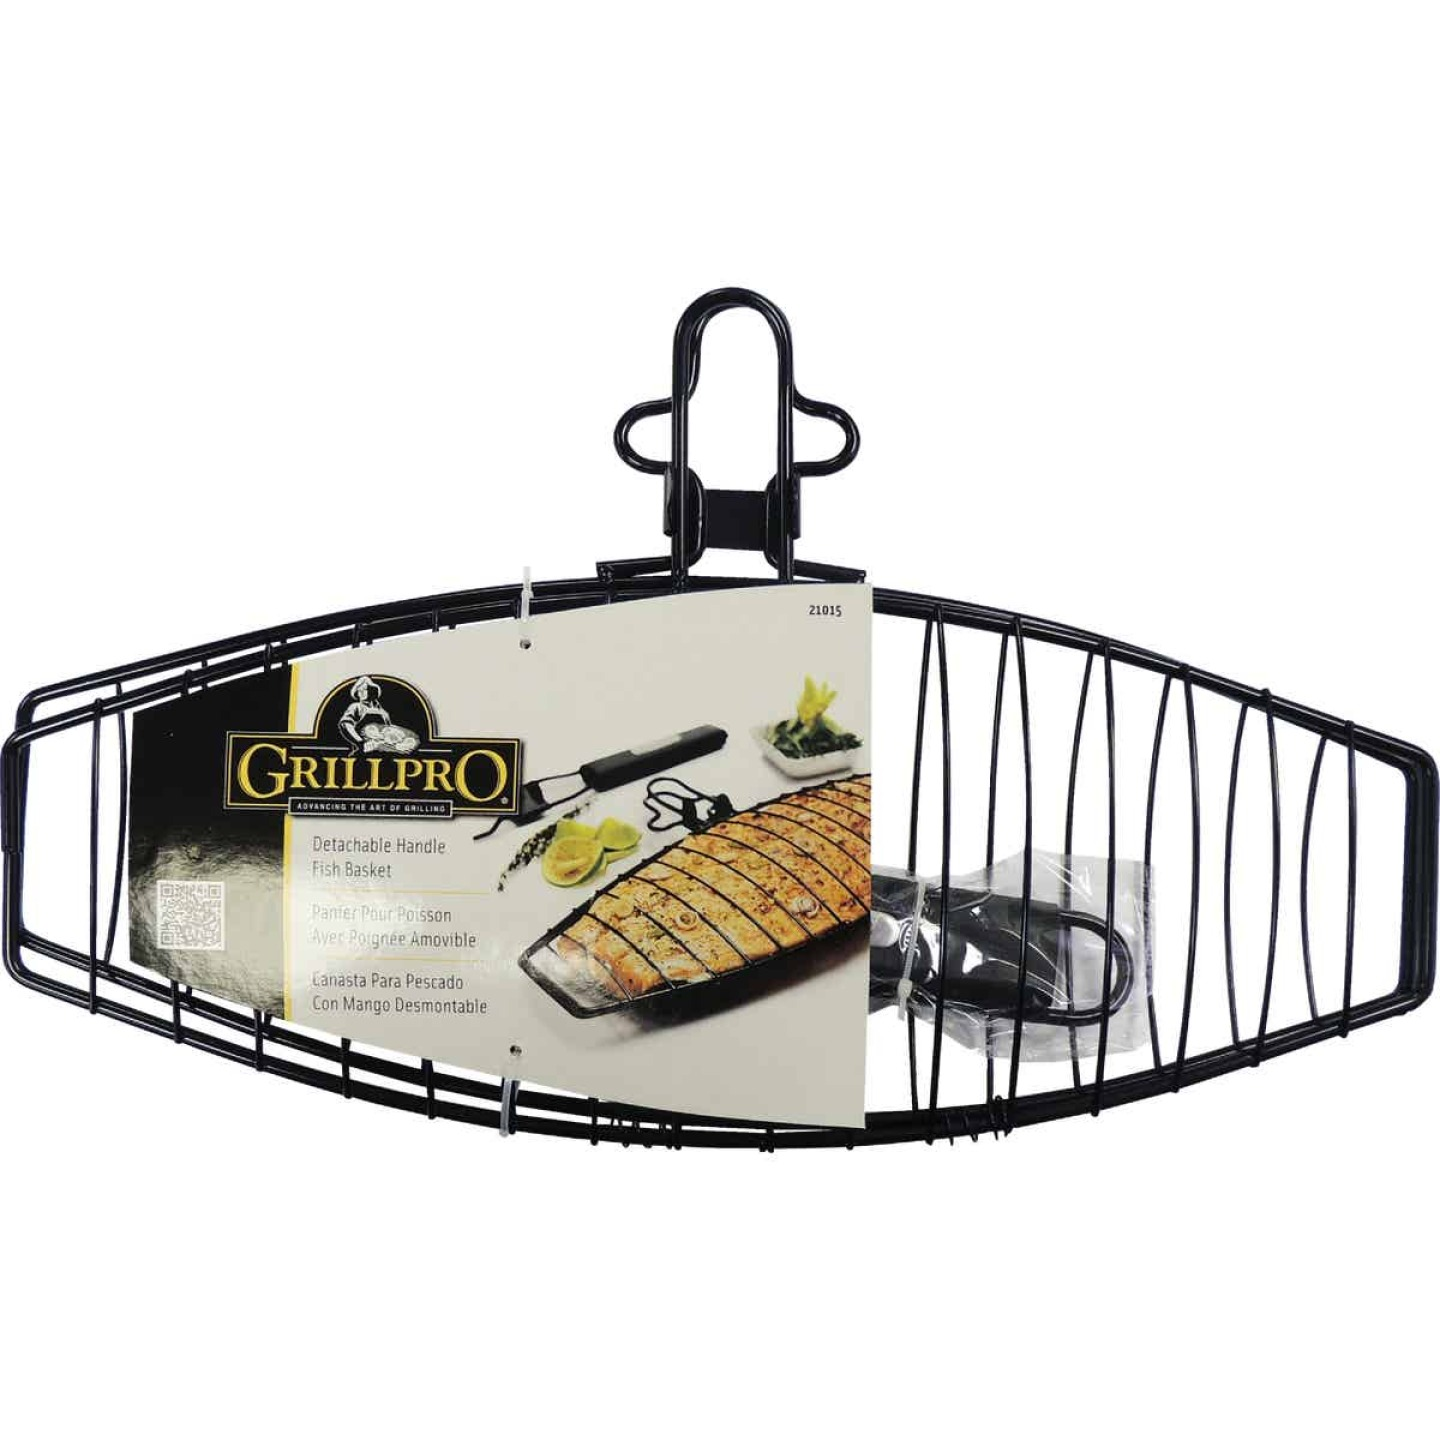 GrillPro 6.25 In. W. Steel Grill Fish Basket Image 2